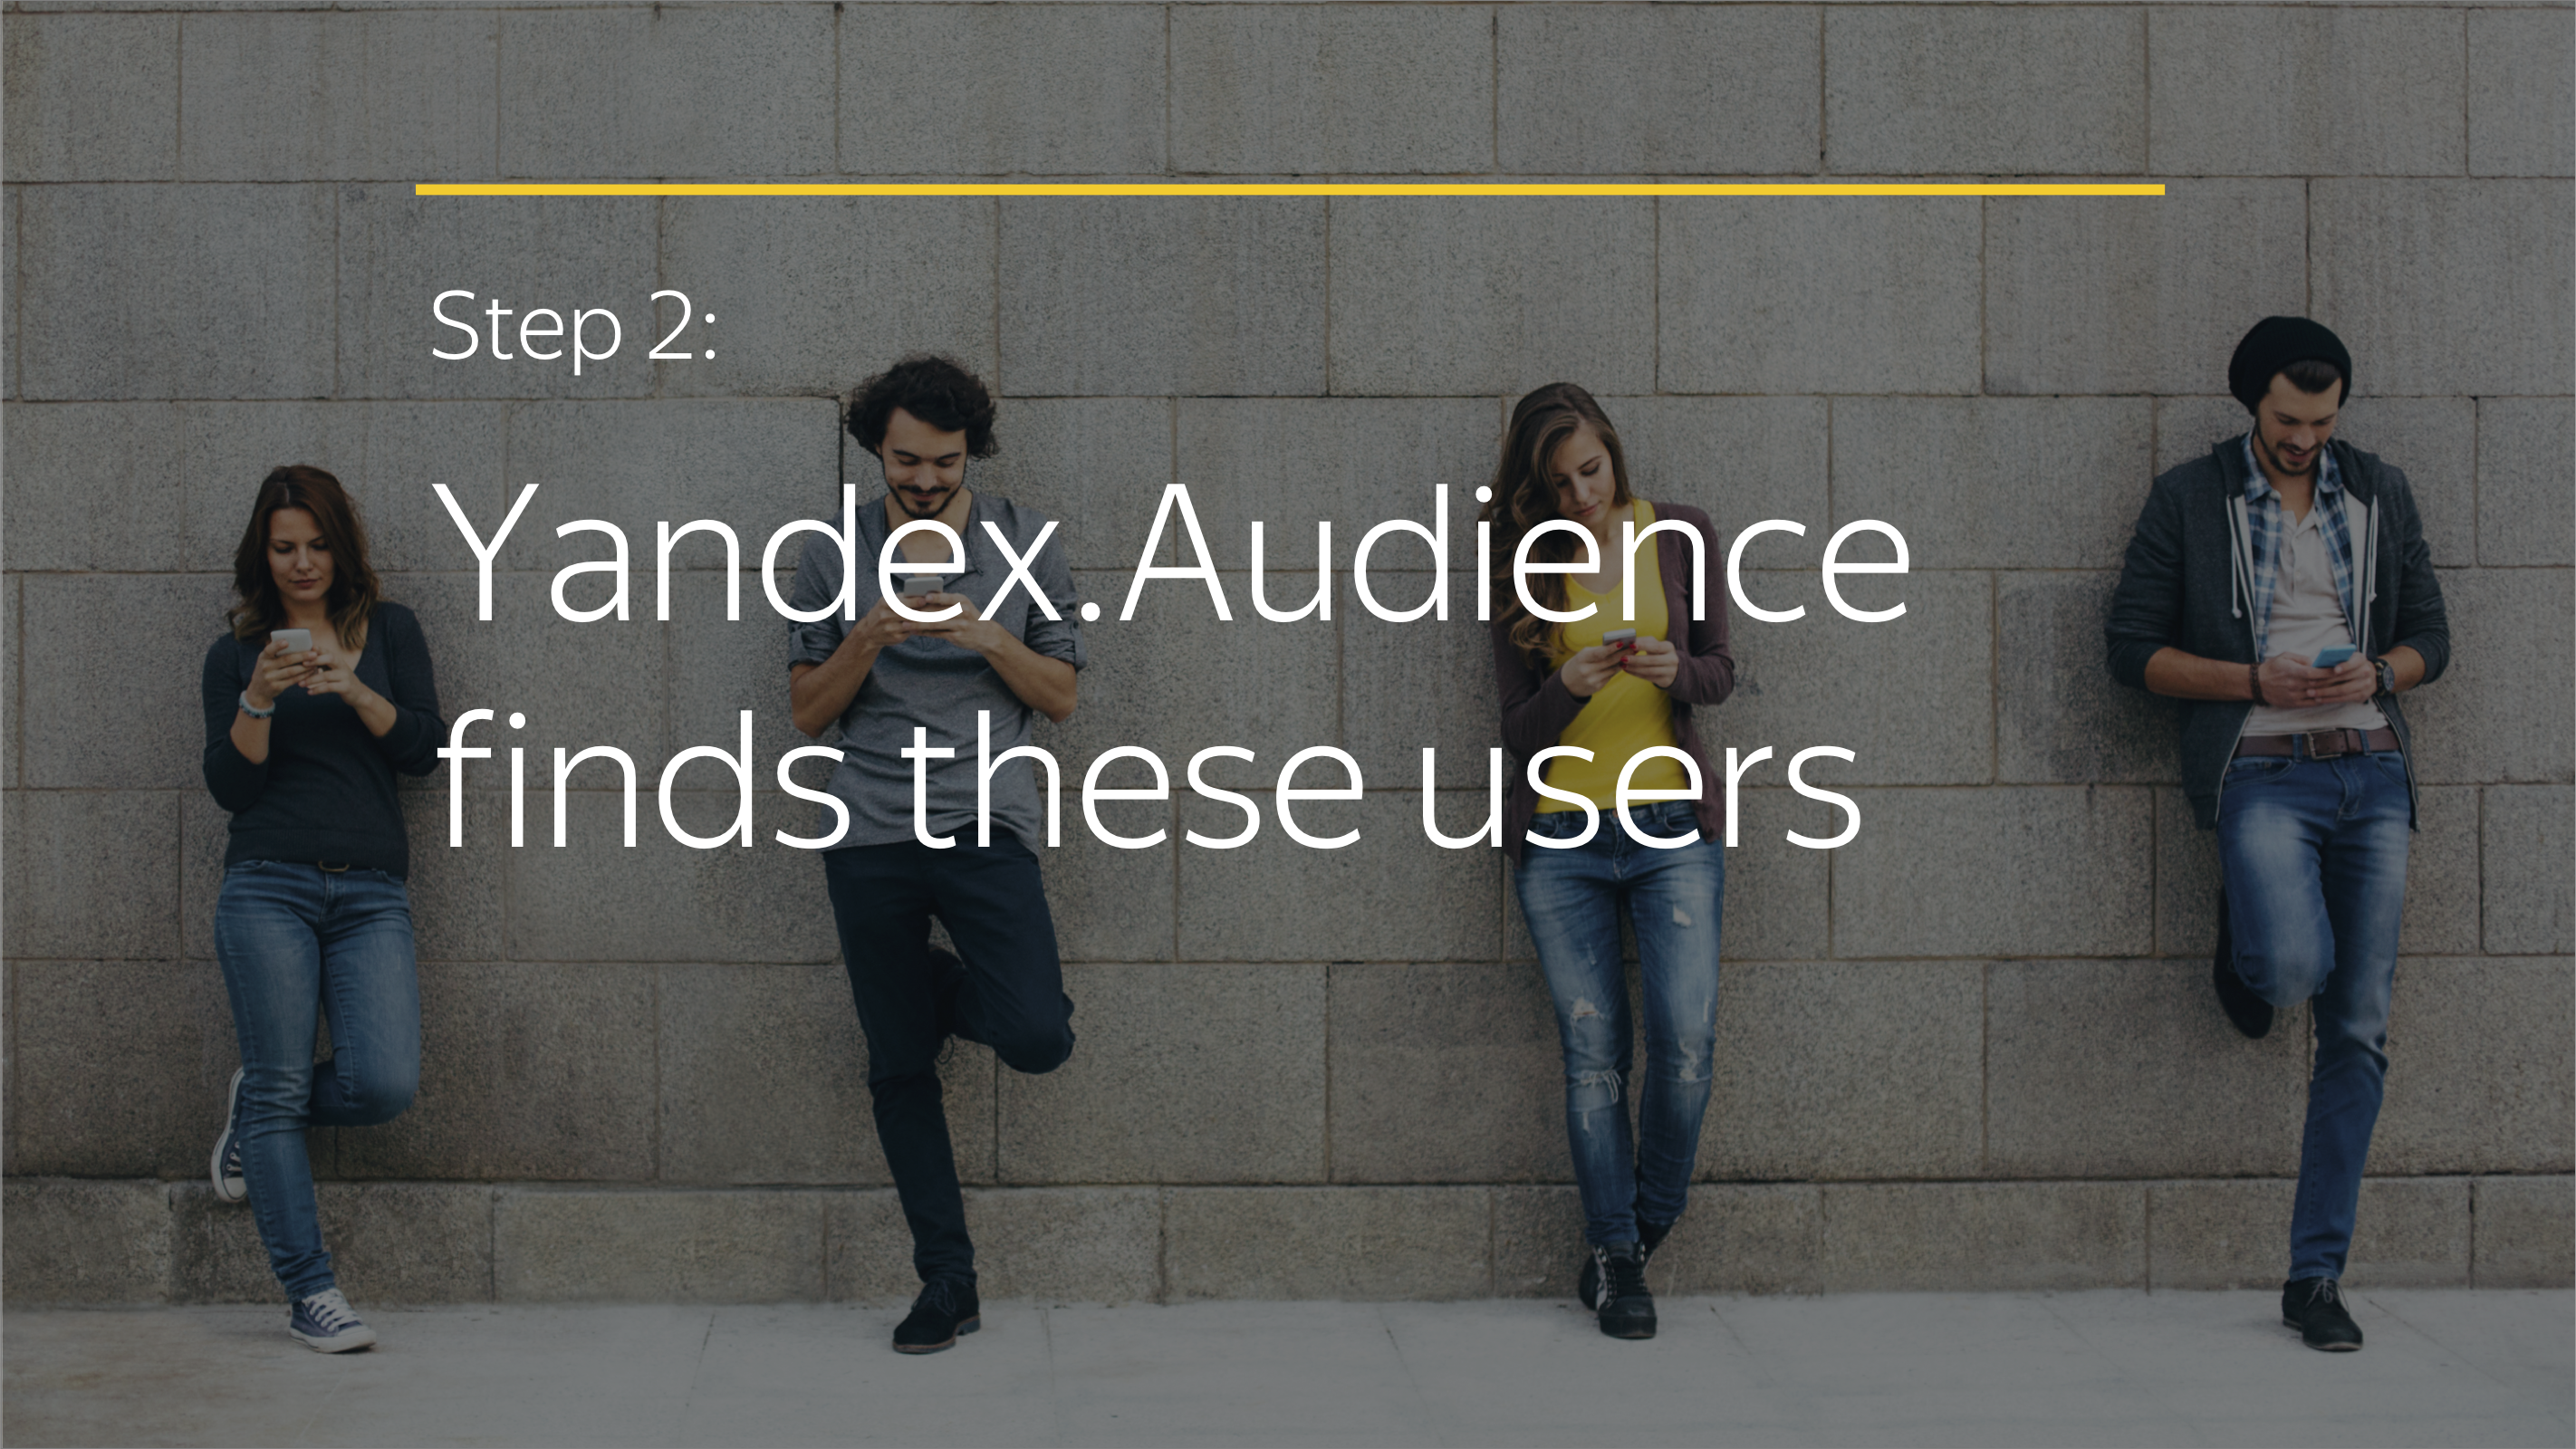 Step 2: Yandex.Audience finds these users